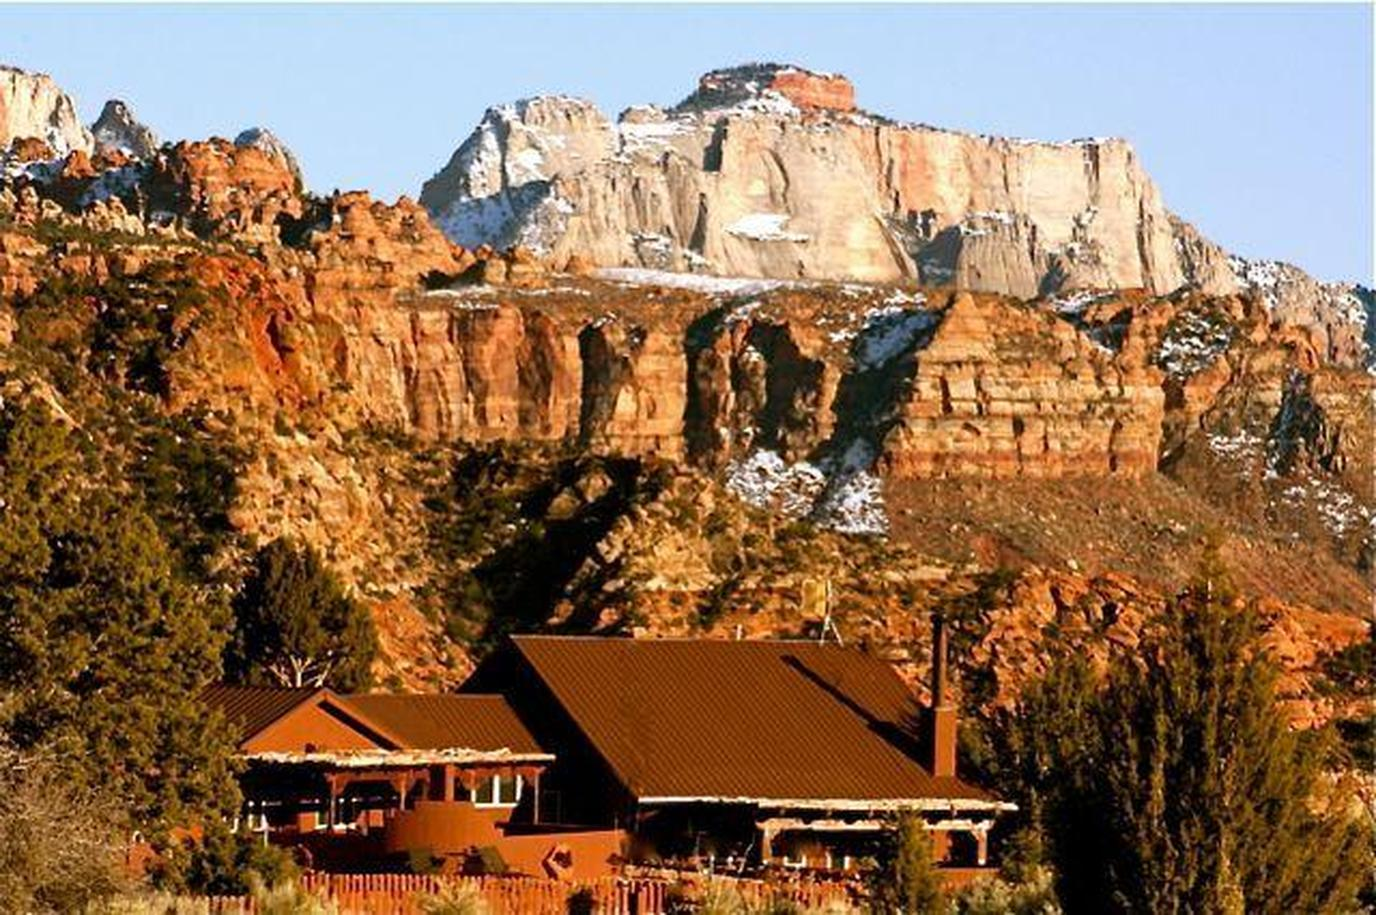 Exterior of Zionvilla, a Dog-Friendly Vacation Rental Within Zion National Park.